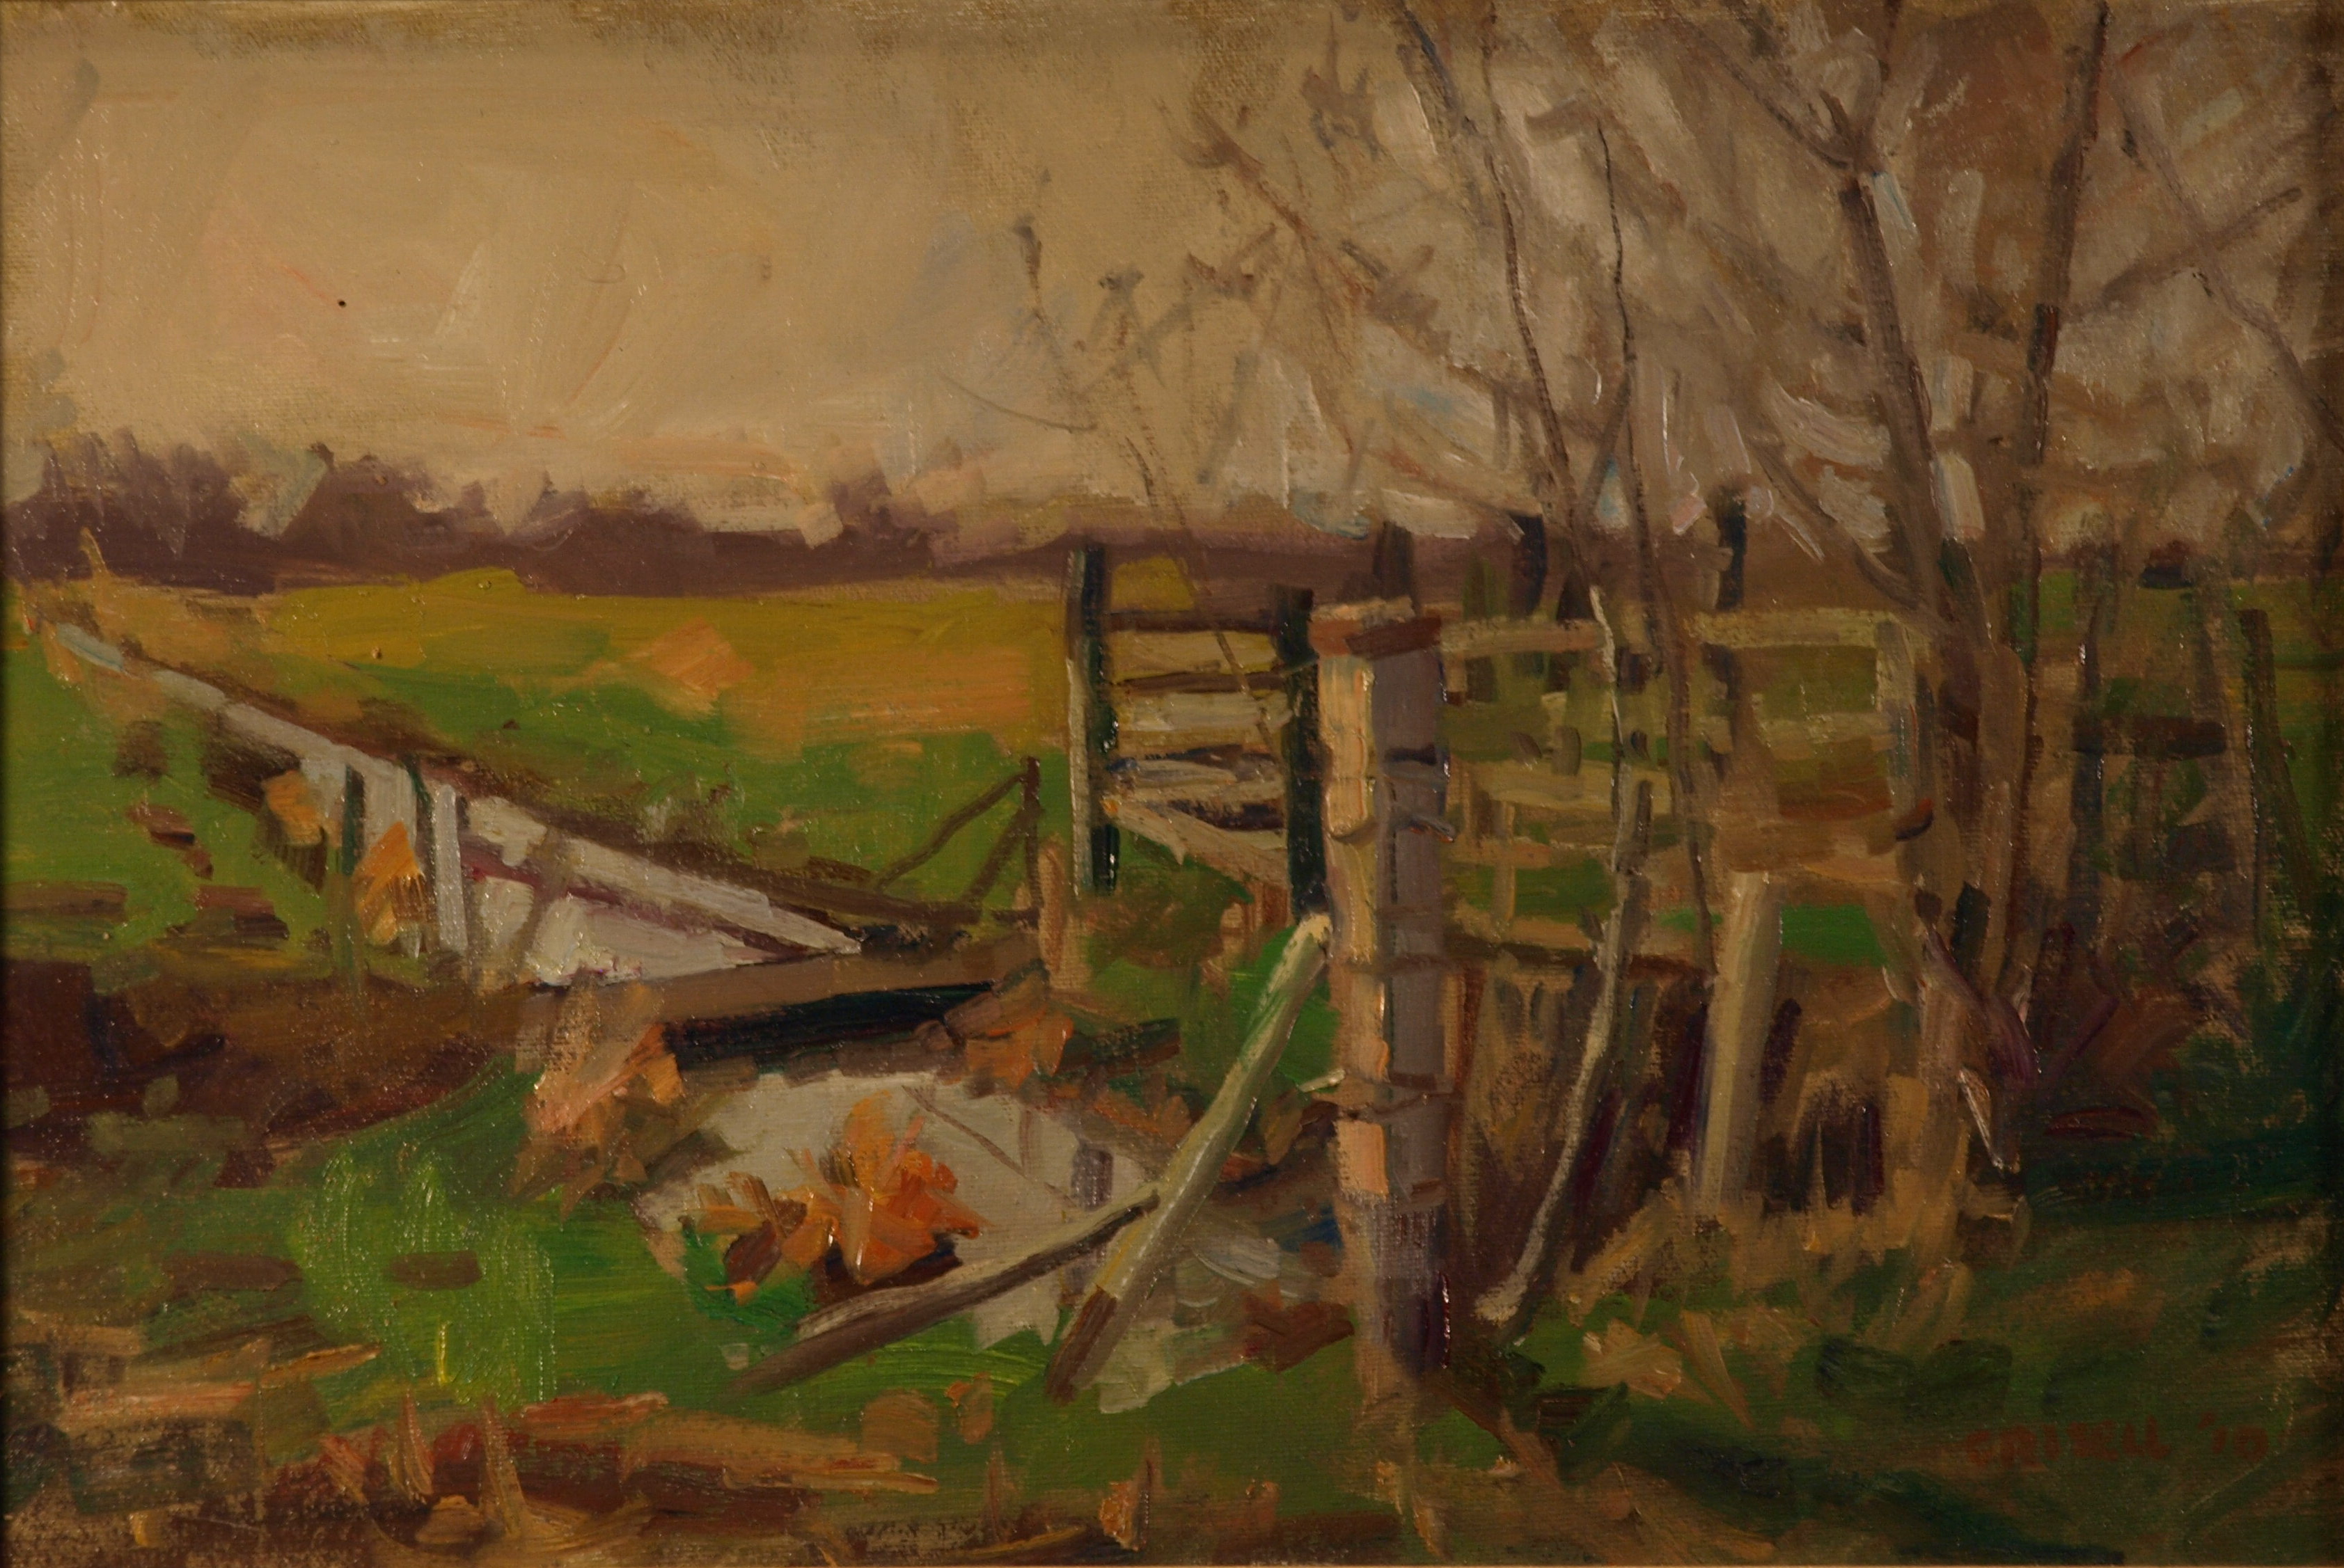 Lowland - France, Oil on Canvas on Panel, 12 x 18 Inches, by Susan Grisell, $275